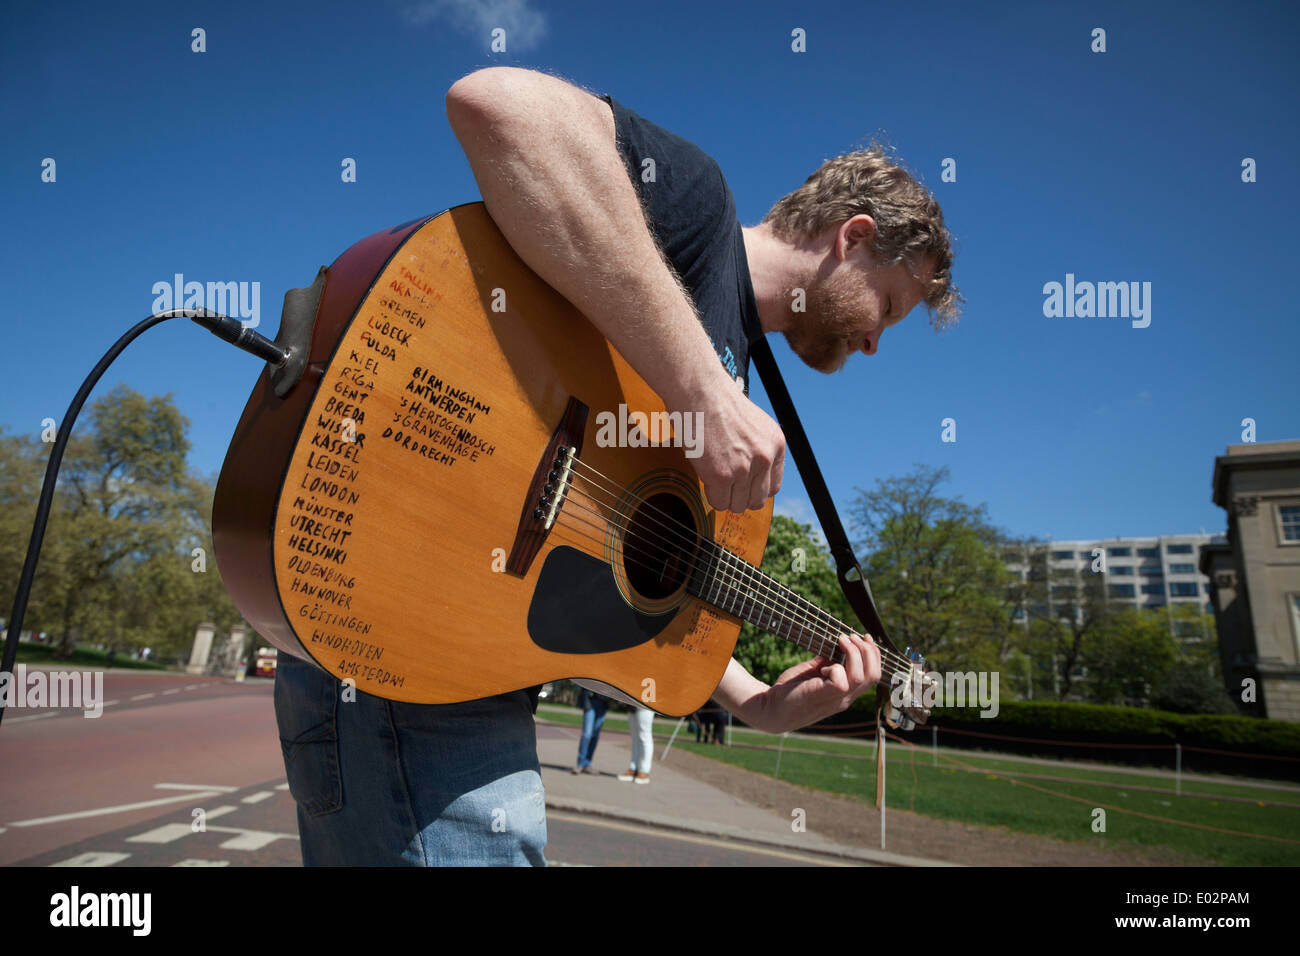 Street musician with amplified acoustic guitar list of places visited europe - Stock Image